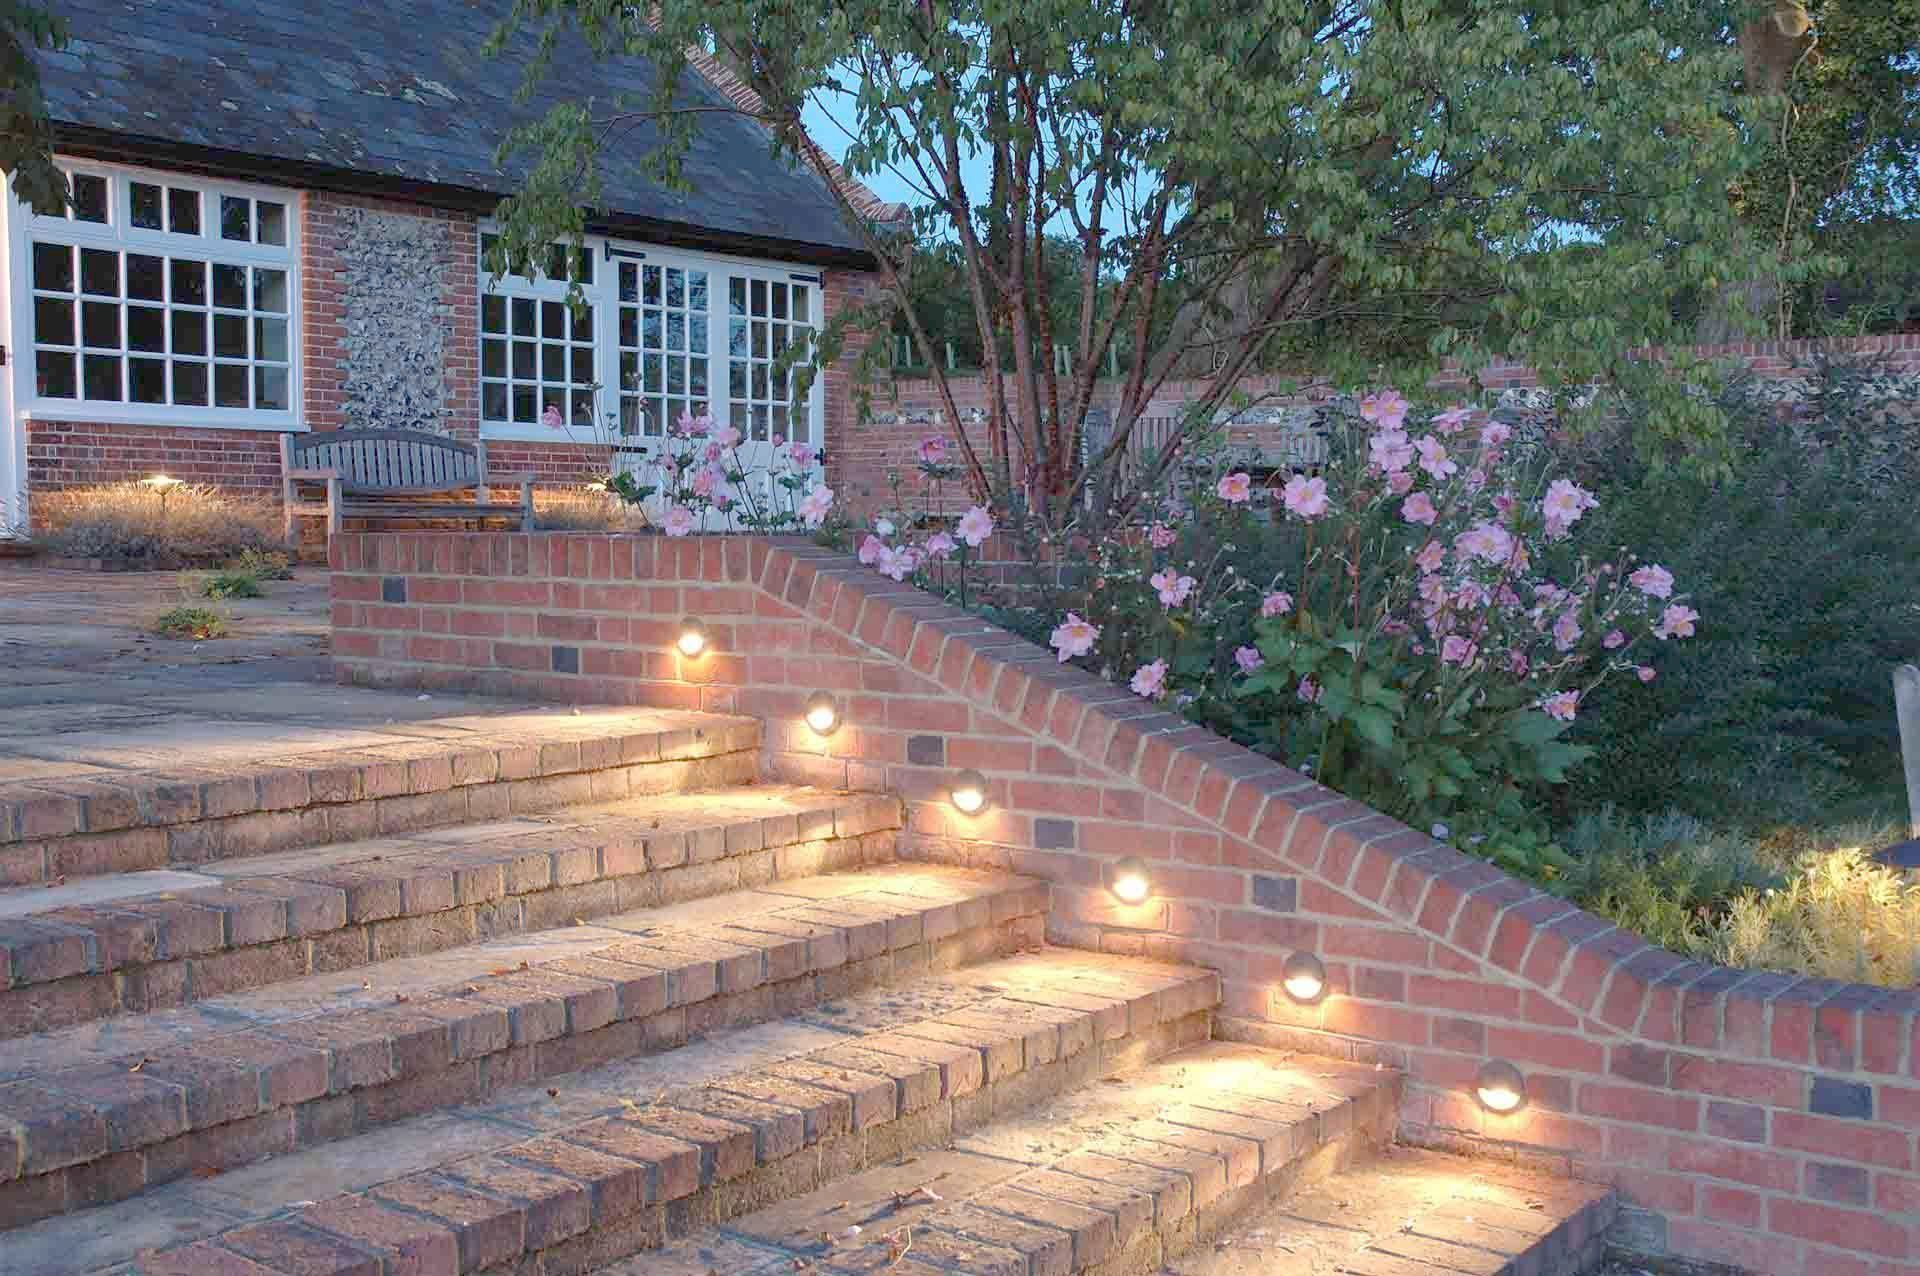 Malibu Outdoor Landscape Lighting Kits One Malibu Landscape Lighting Led Bulbs A Landscape Lightin Garden Lighting Design Outdoor Stair Lighting Outdoor Stairs